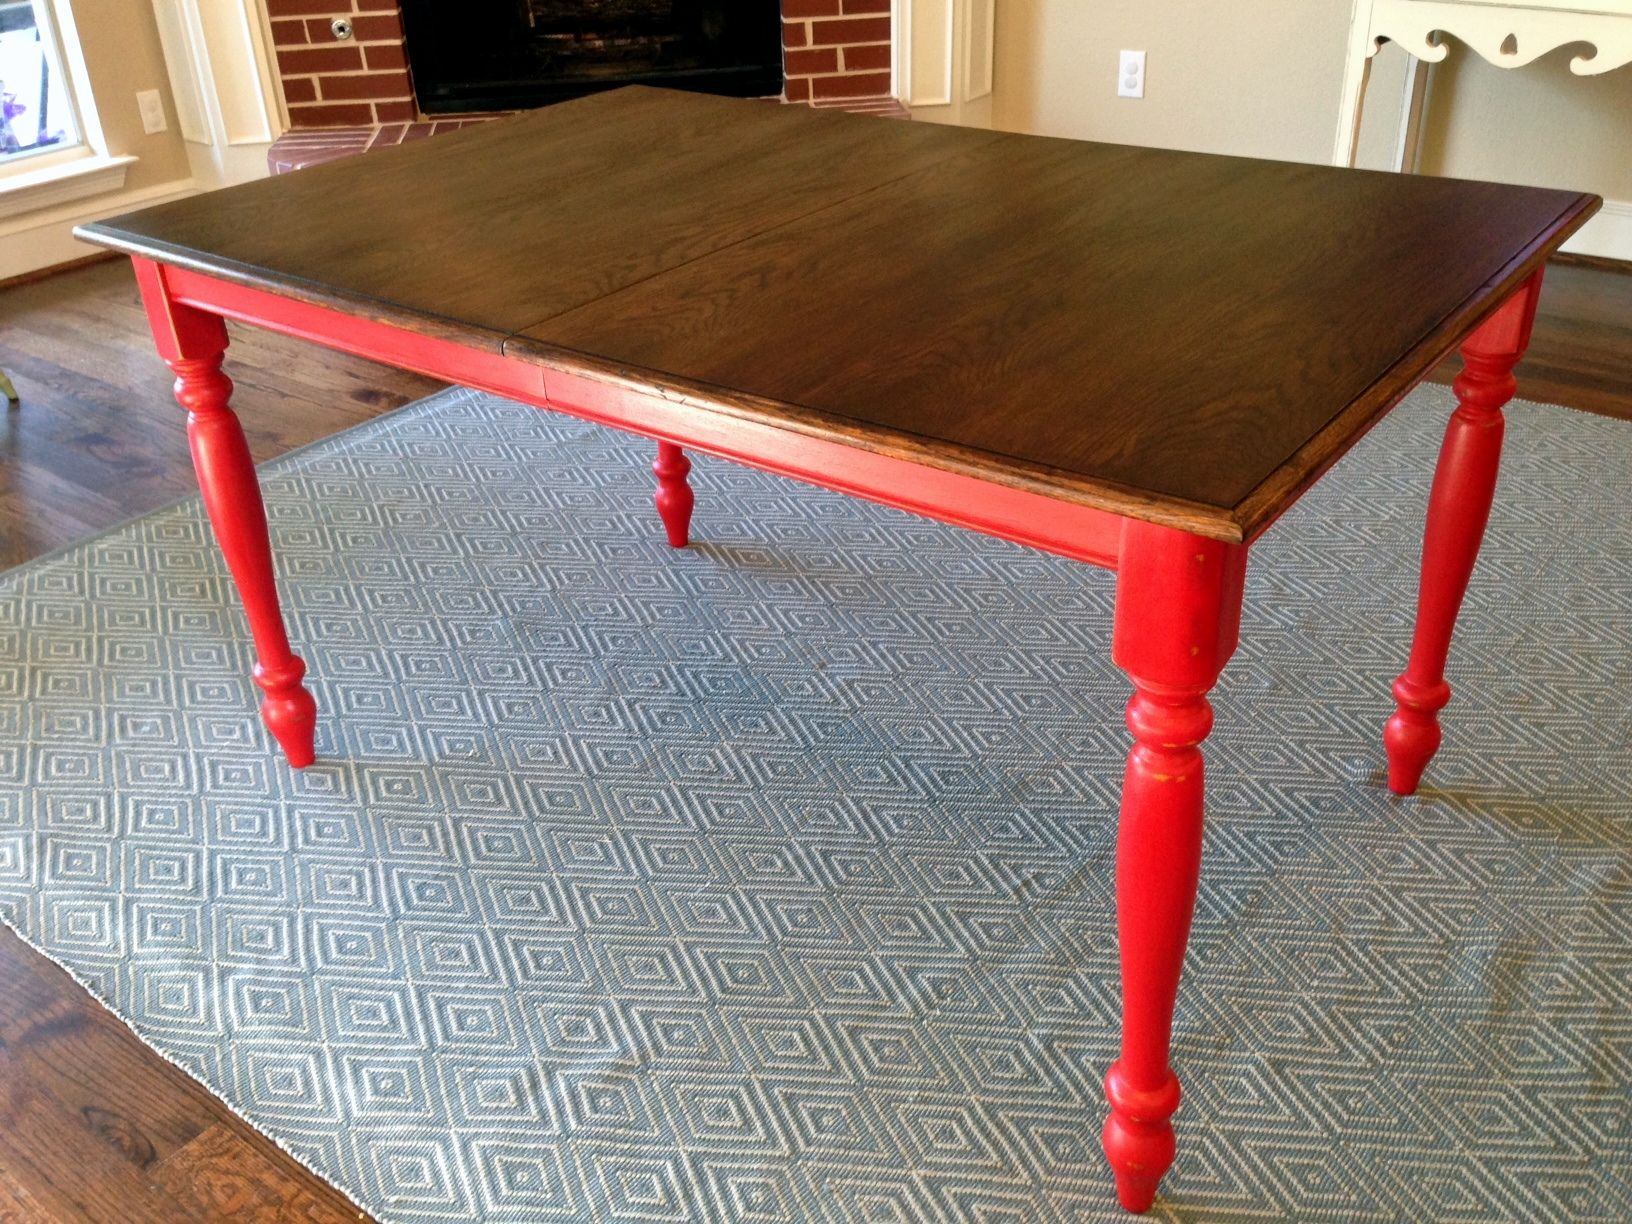 Oak Table Turned Farmhouse With Red Legs And Restained Top